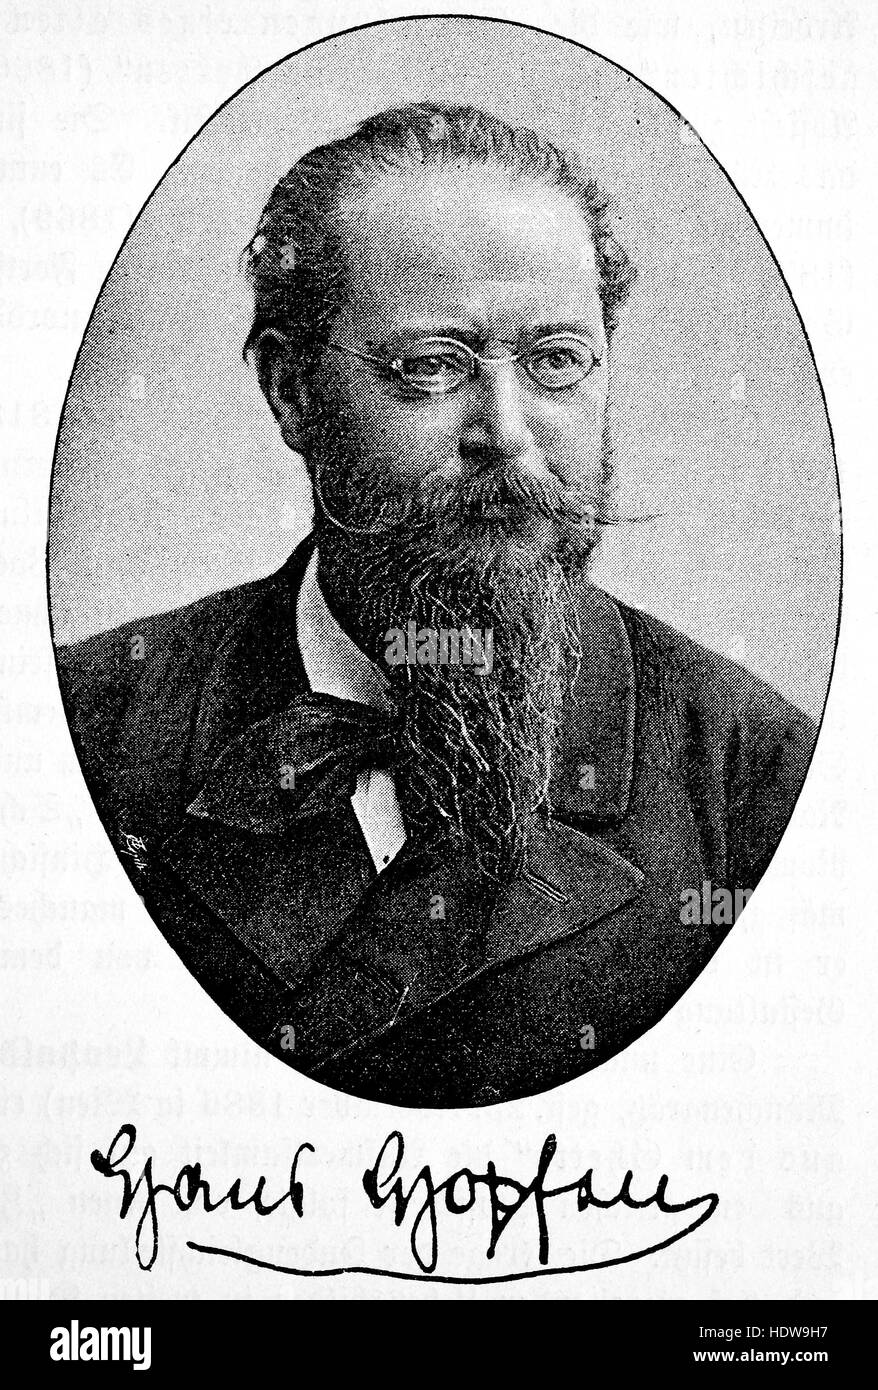 Demetrius Hans Hopfen, 1835-1904, a Bavarian poet and novelist, woodcut from the year 1880 - Stock Image